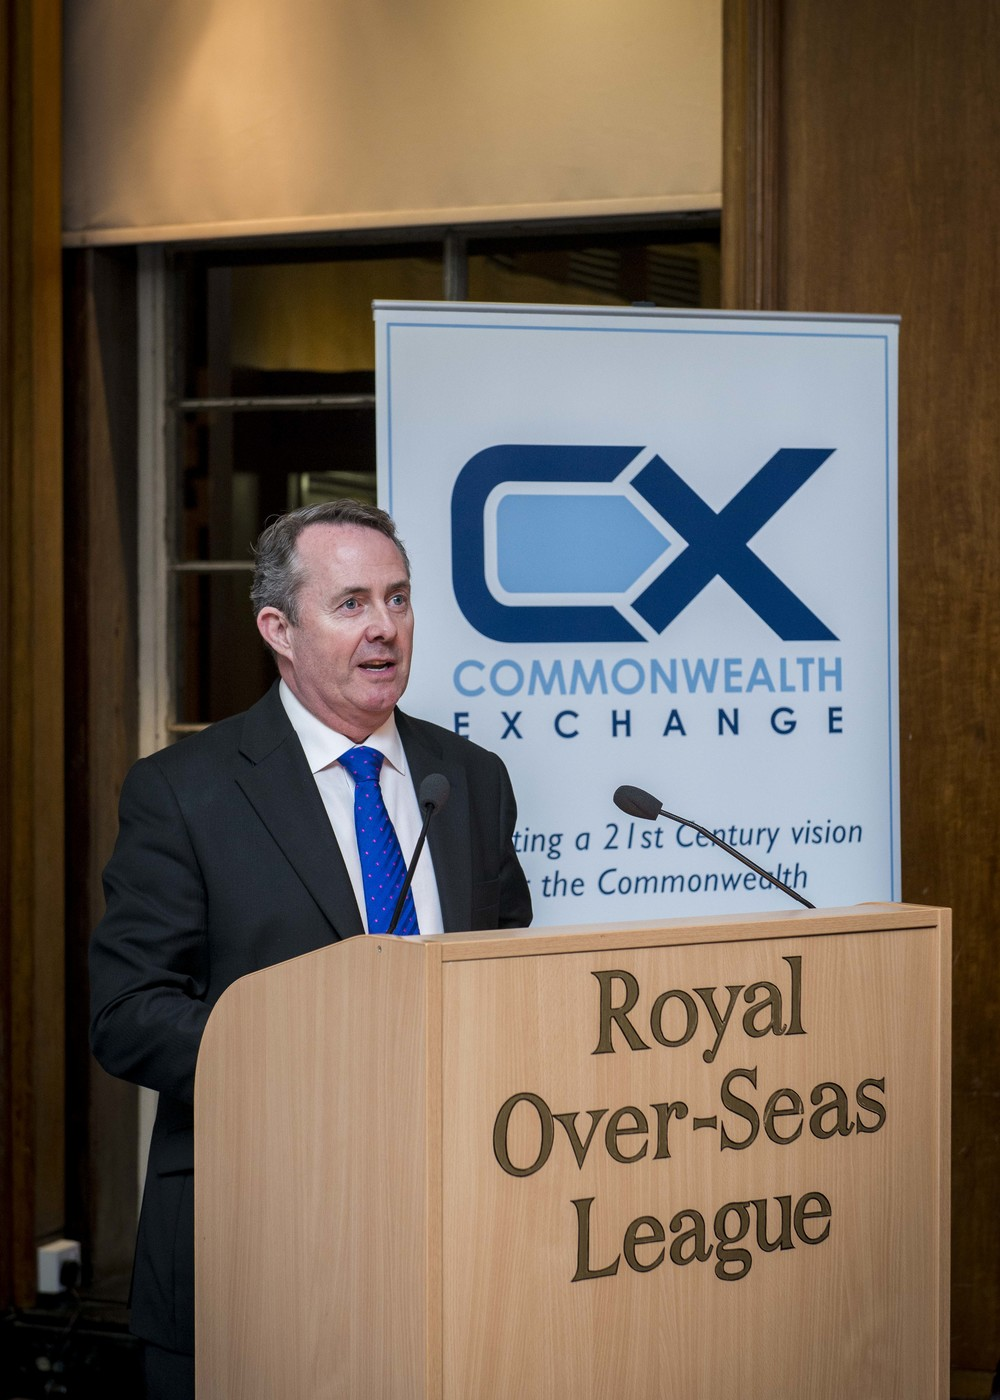 Dr. Liam Fox MP at our defence report launch - March 2015